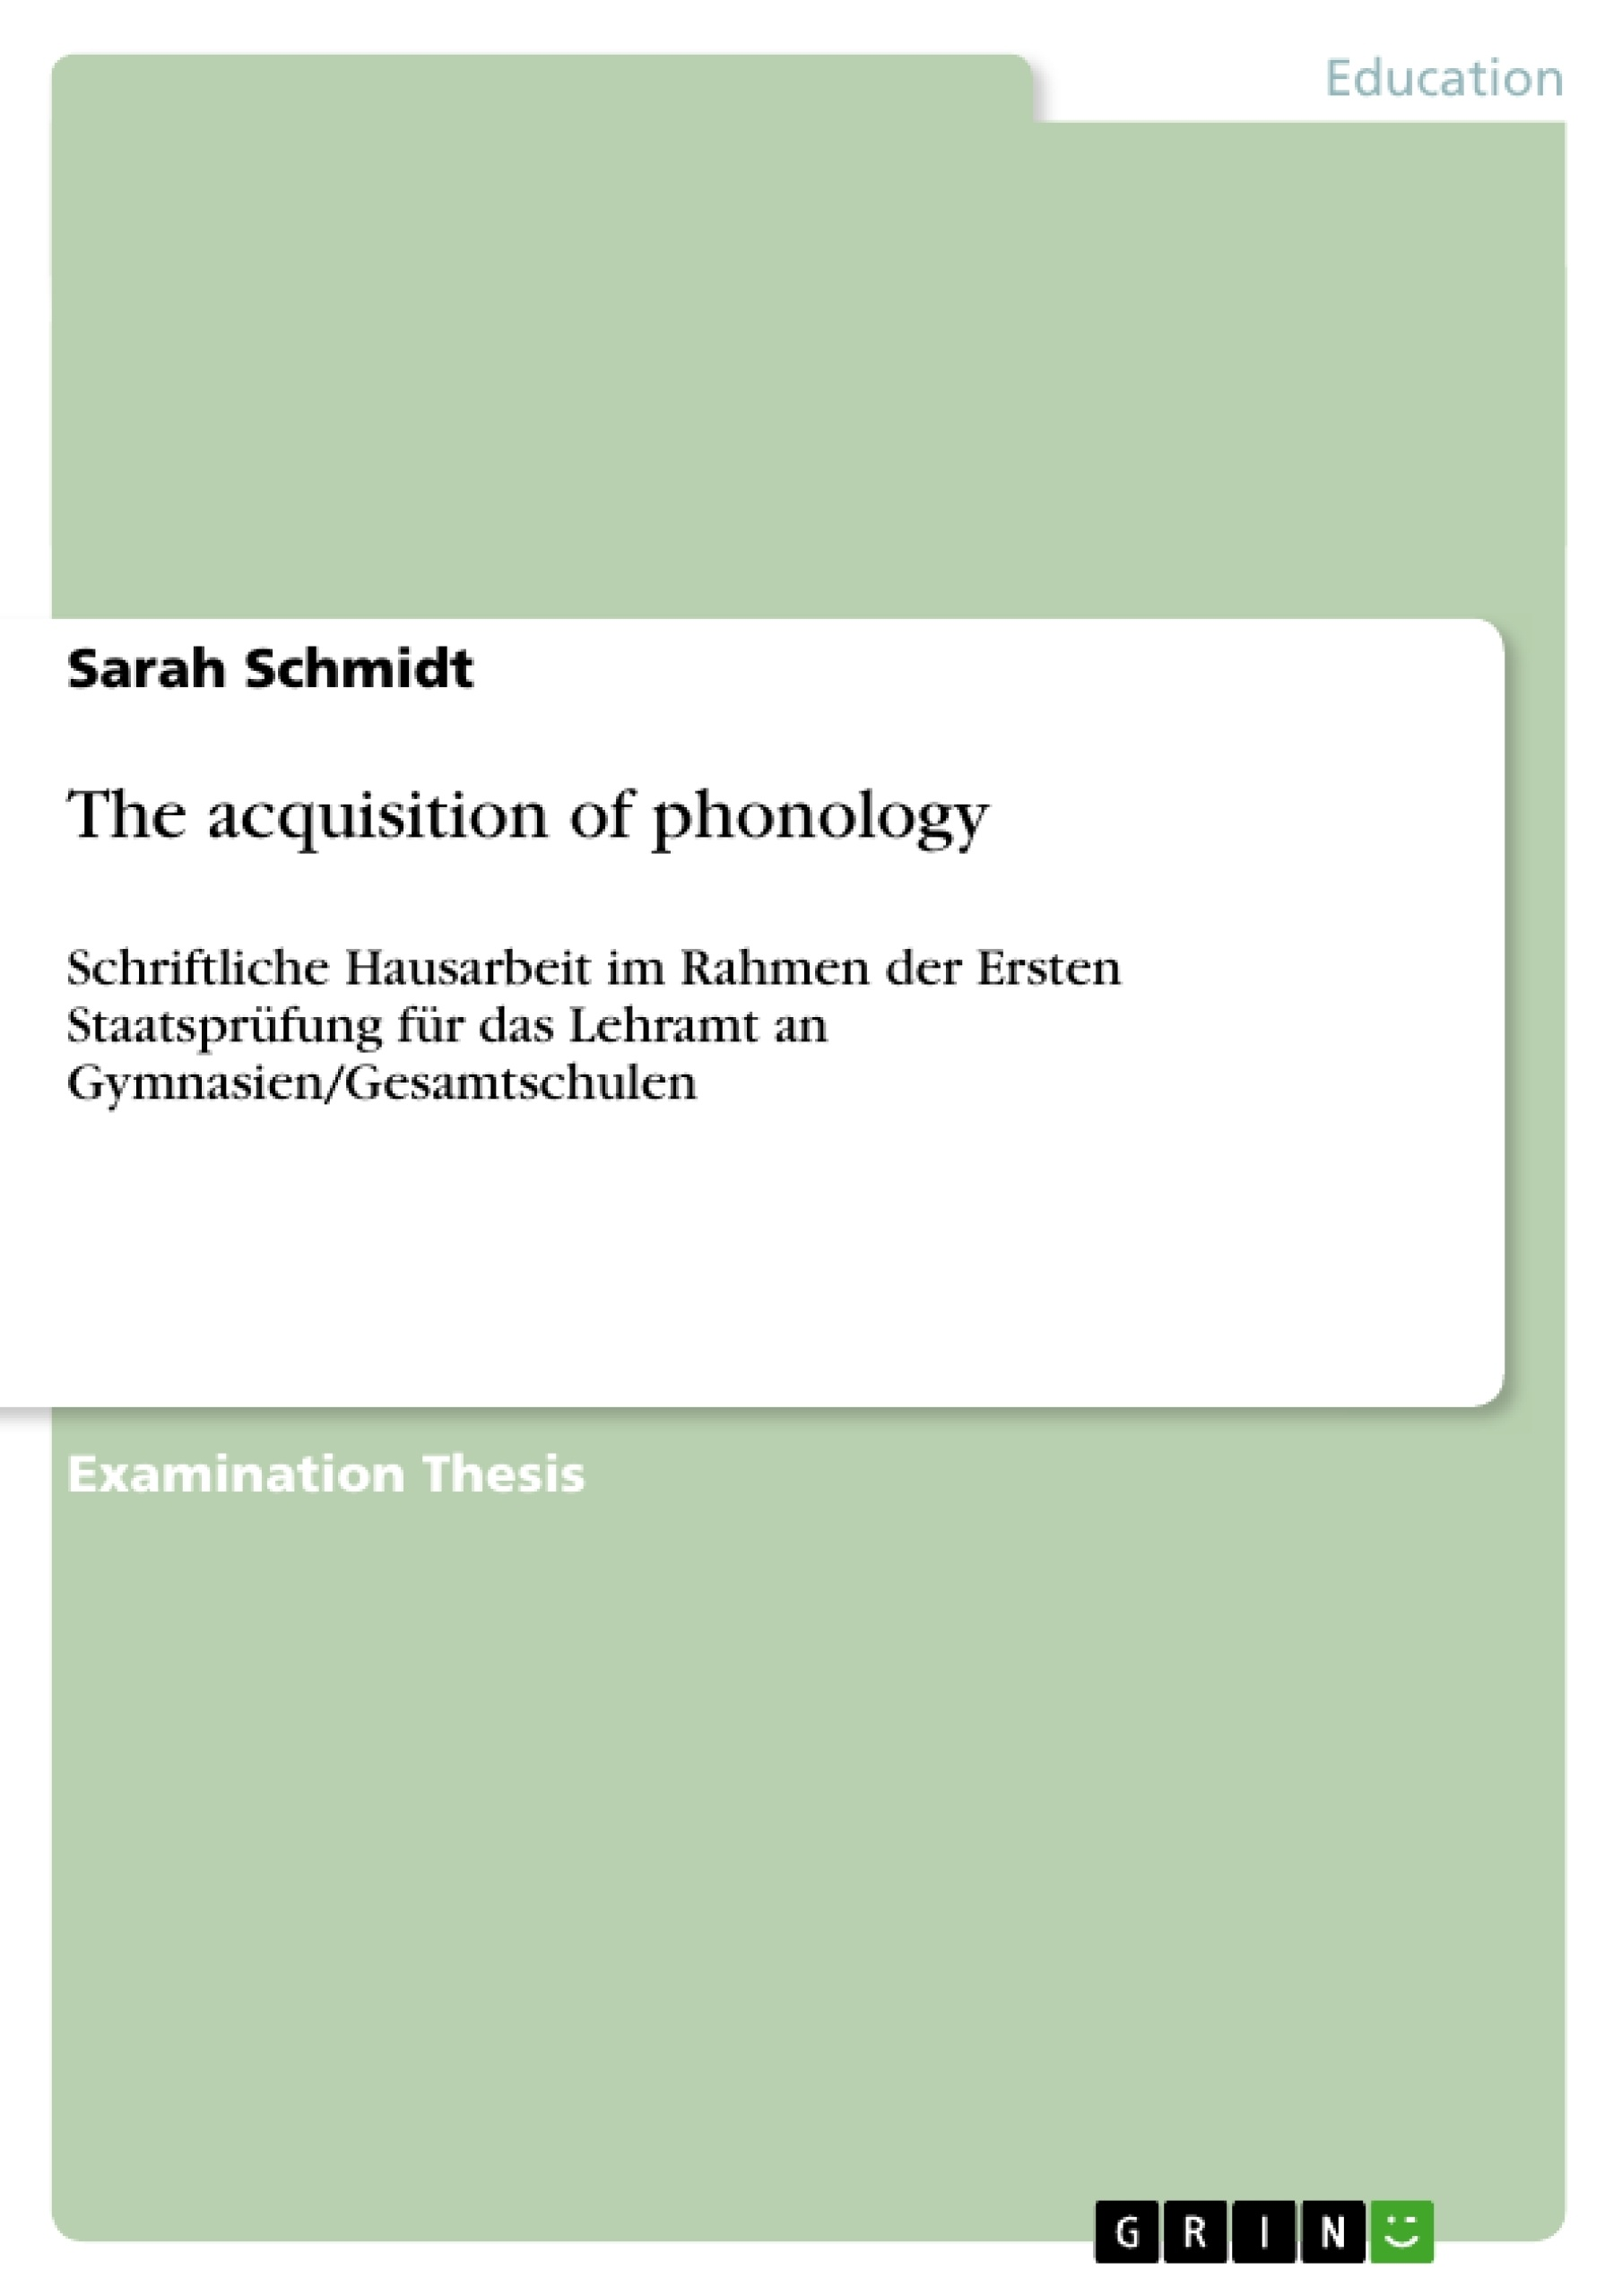 essay on phonology Fun facts about phonology -- the sound patterns of language.